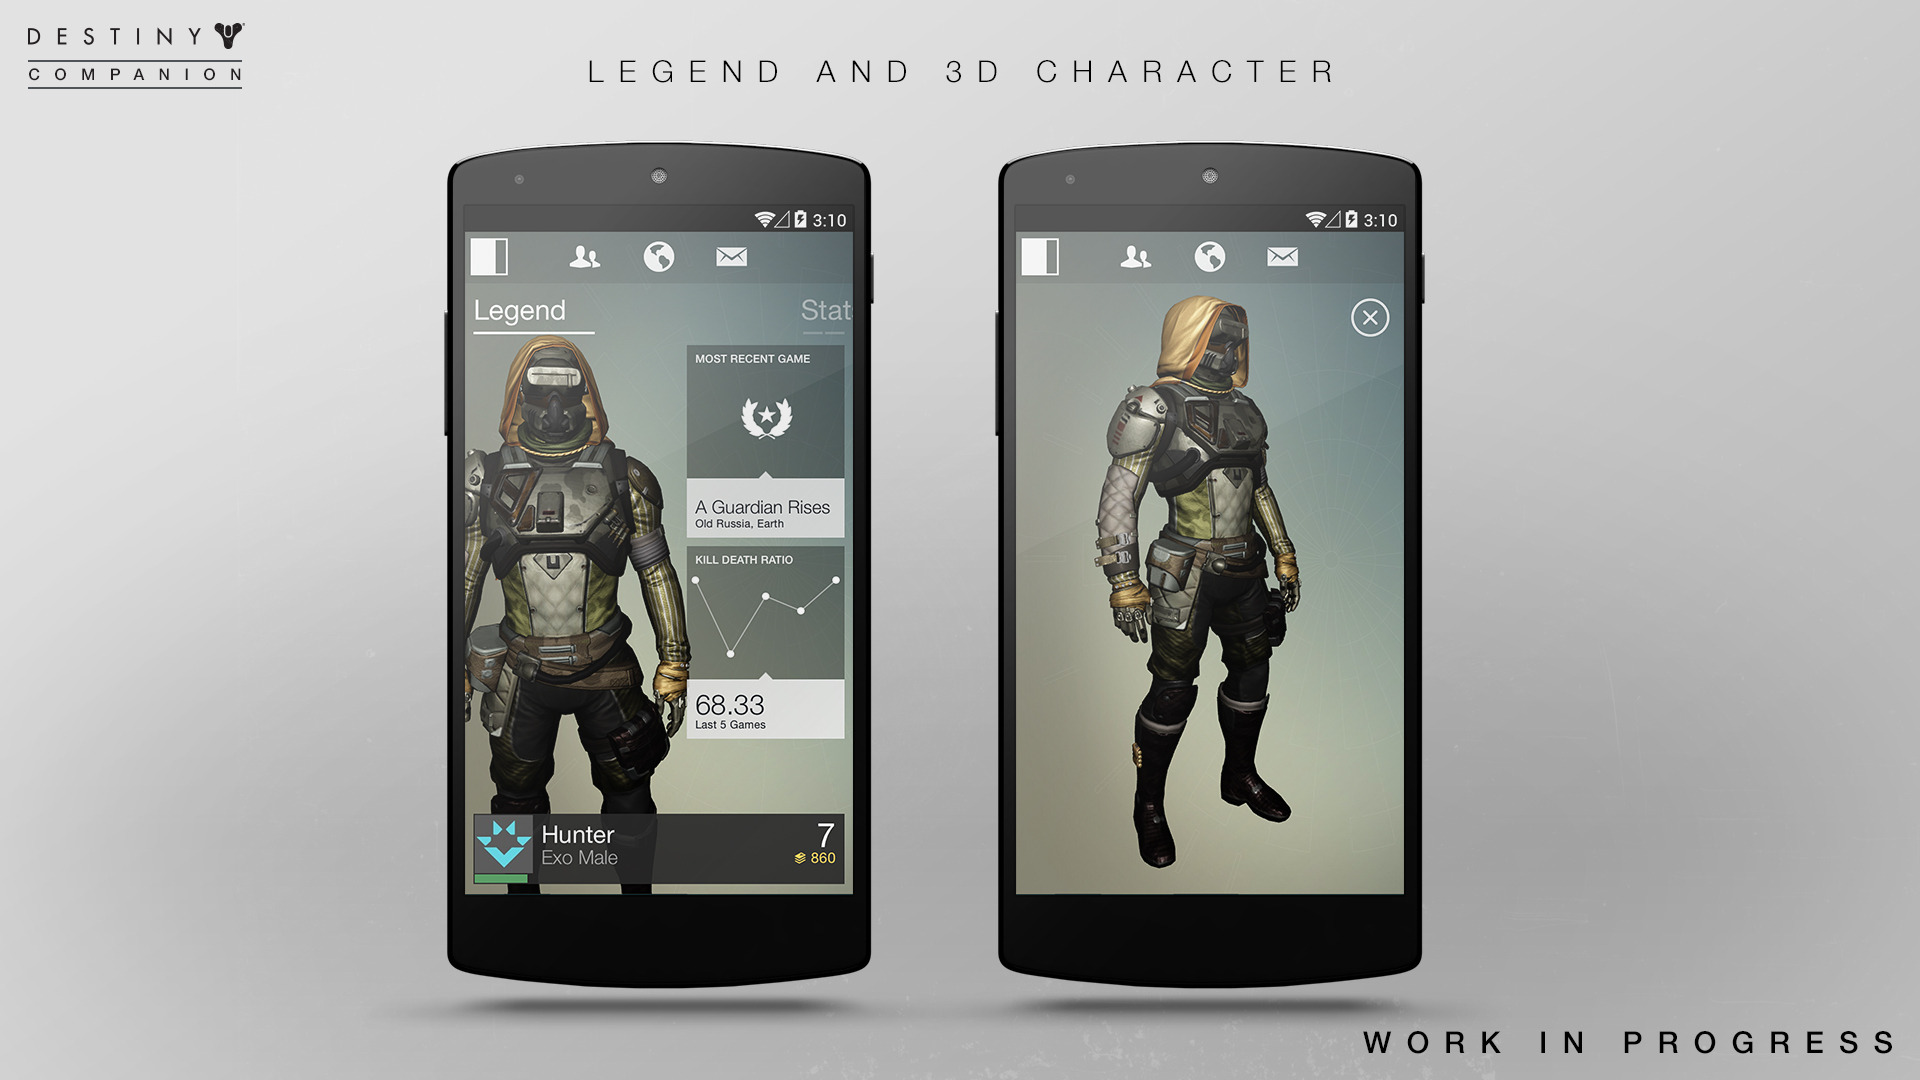 Modojo | Conquer The Destiny Beta With The Official Companion App